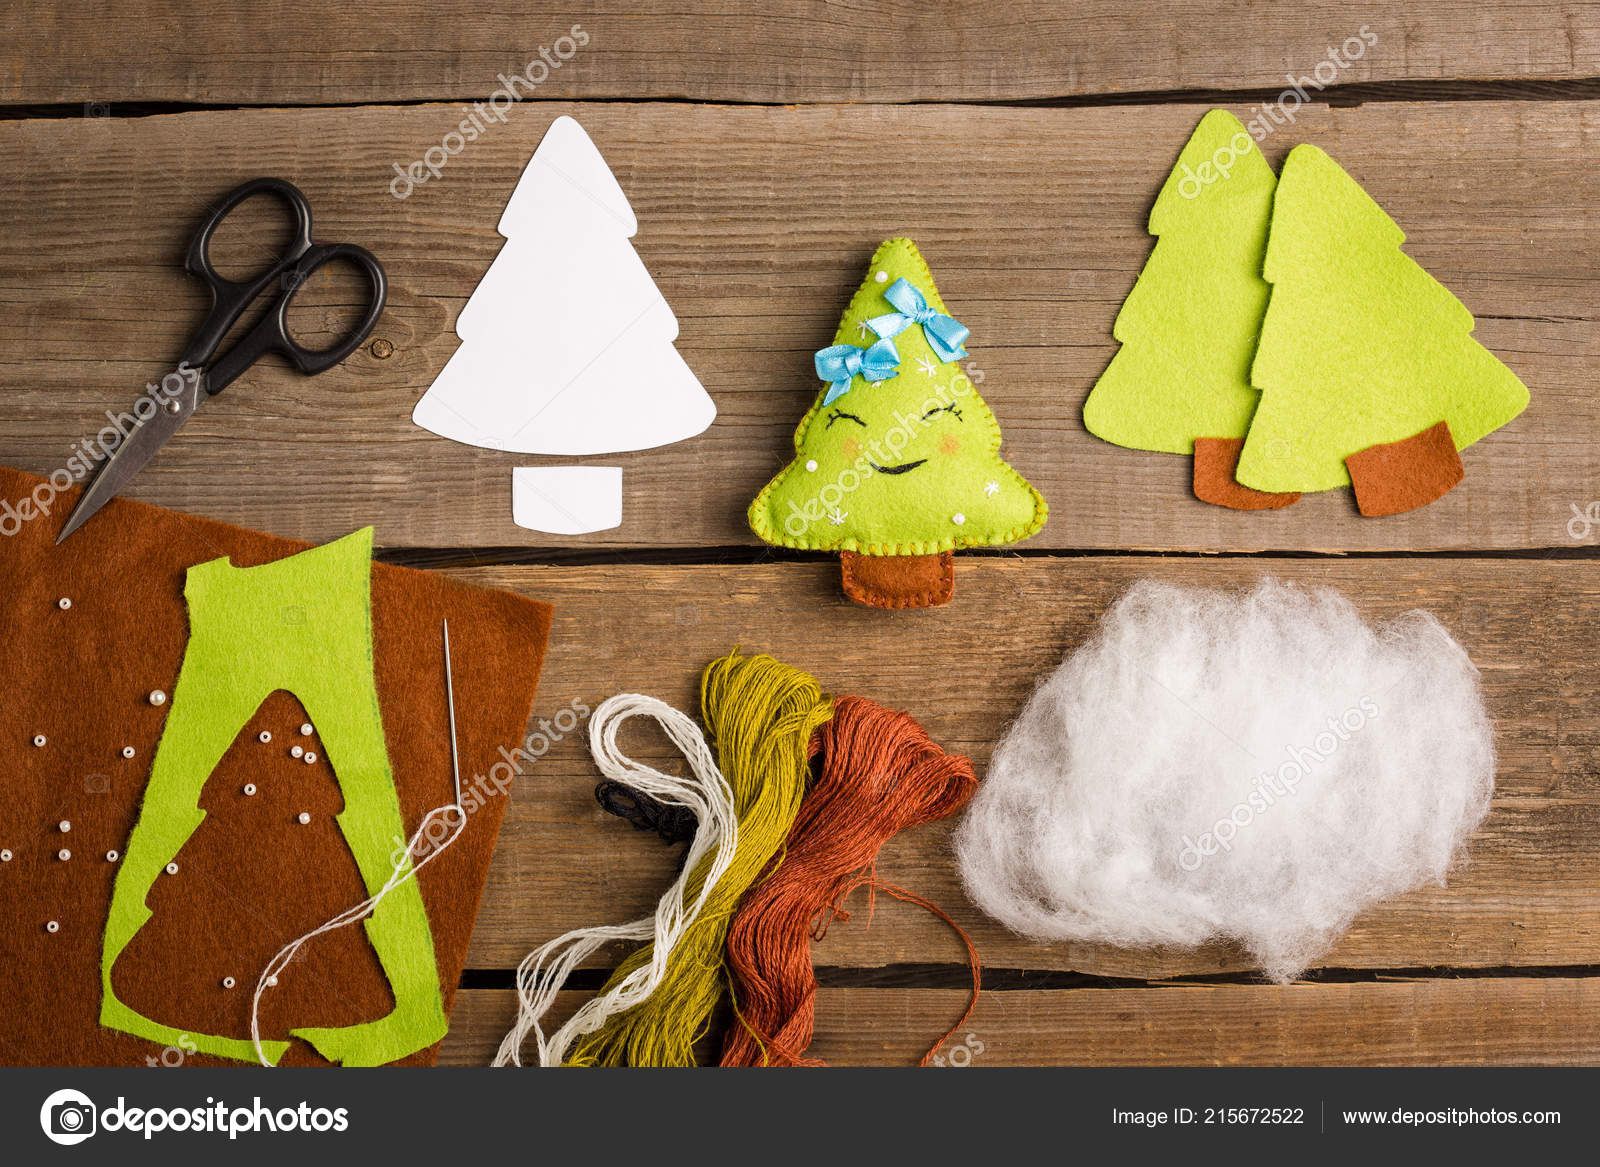 Cut Out Details Fur Tree Toy Fabric Crafts Kids Step Stock Photo